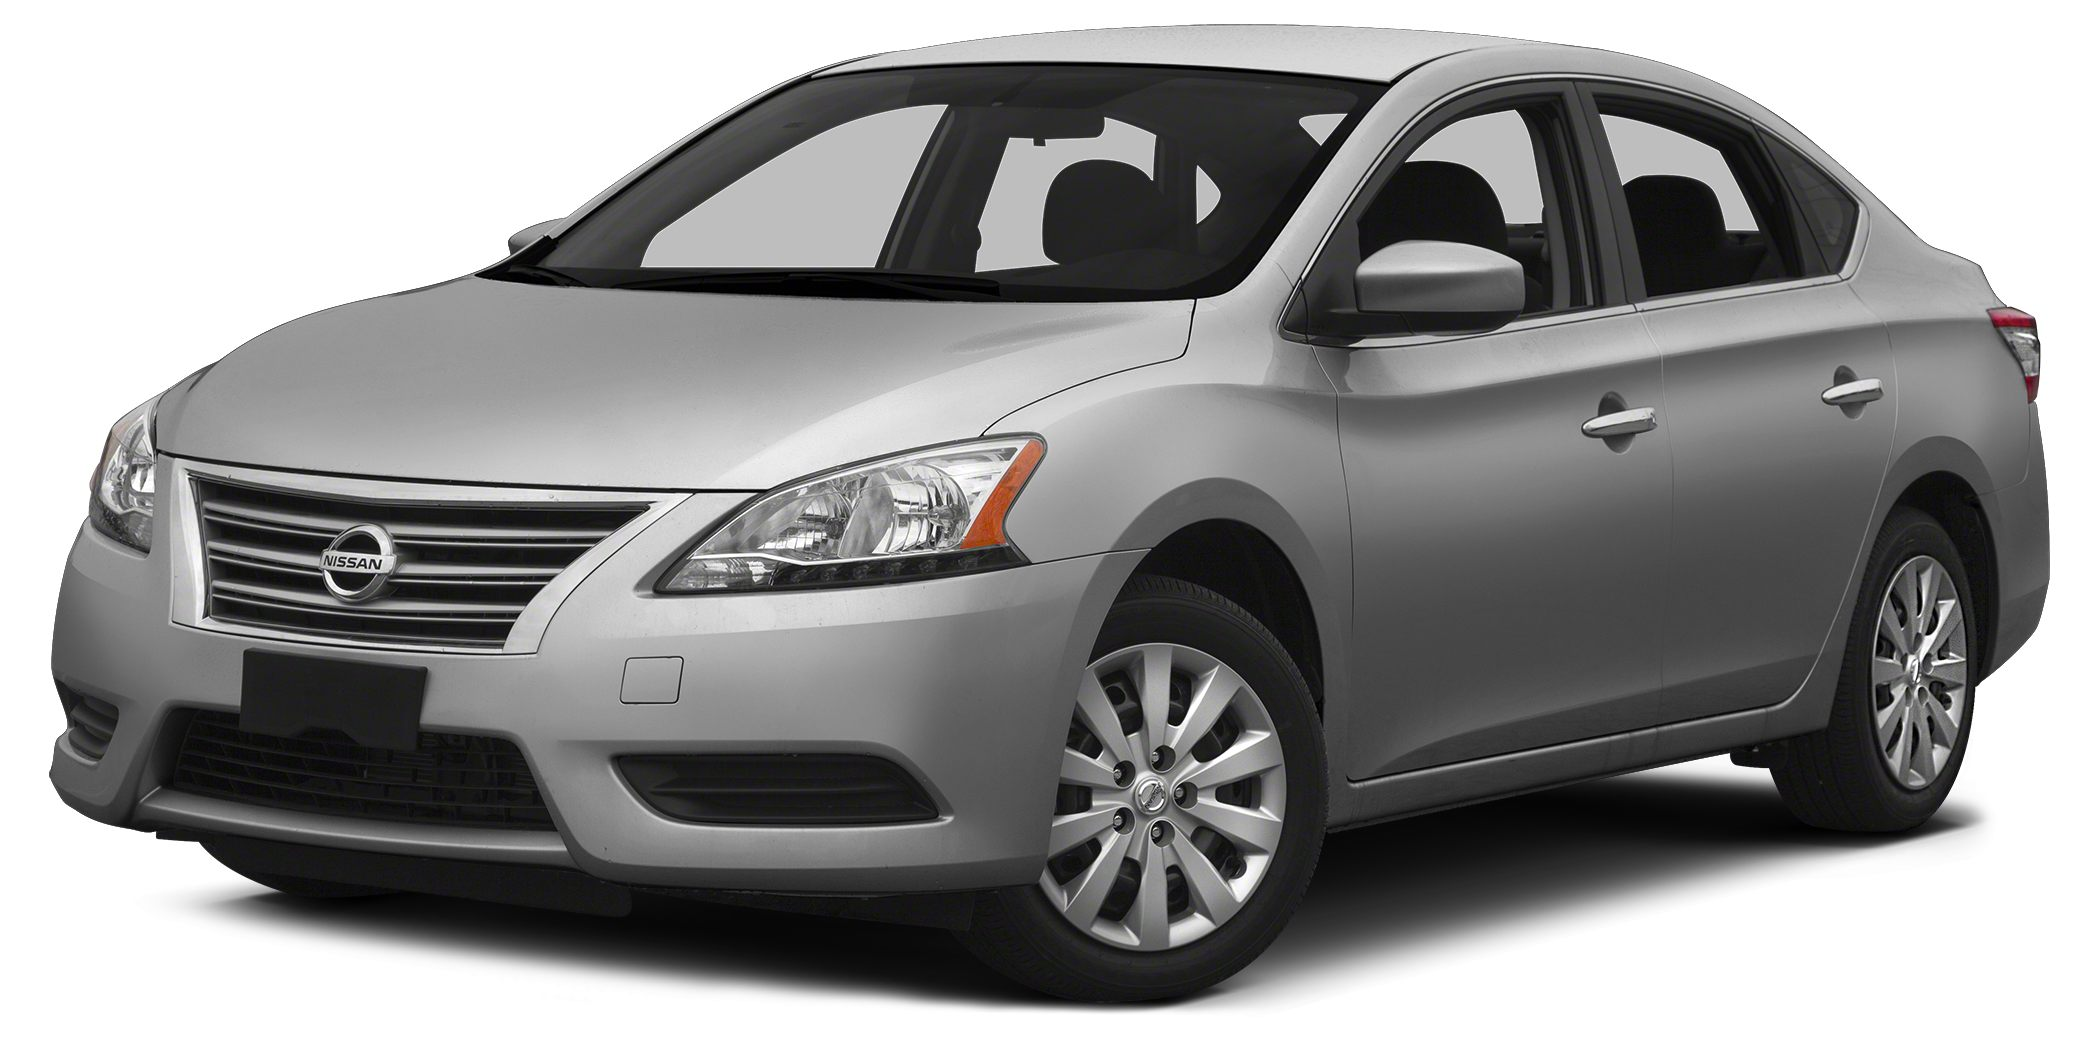 2015 Nissan Sentra SV This 2015 Nissan Sentra SV will sell fast Bluetooth Save money at the pump